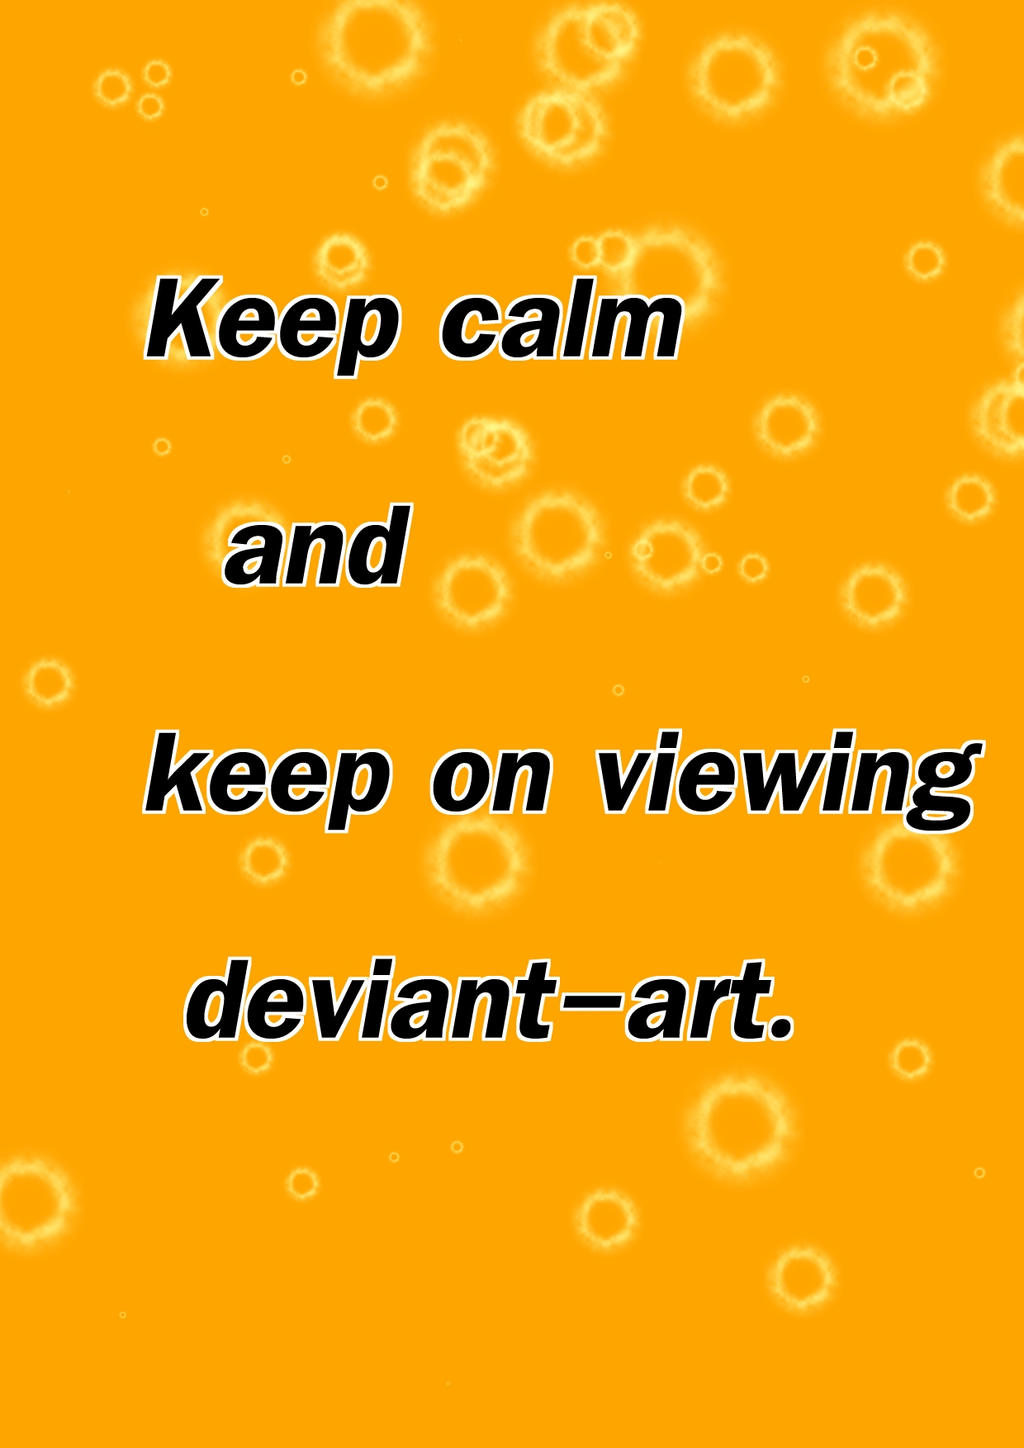 KEEP CALM AND KEEP ON VIEWING DEVIANT-ART by kongqian7